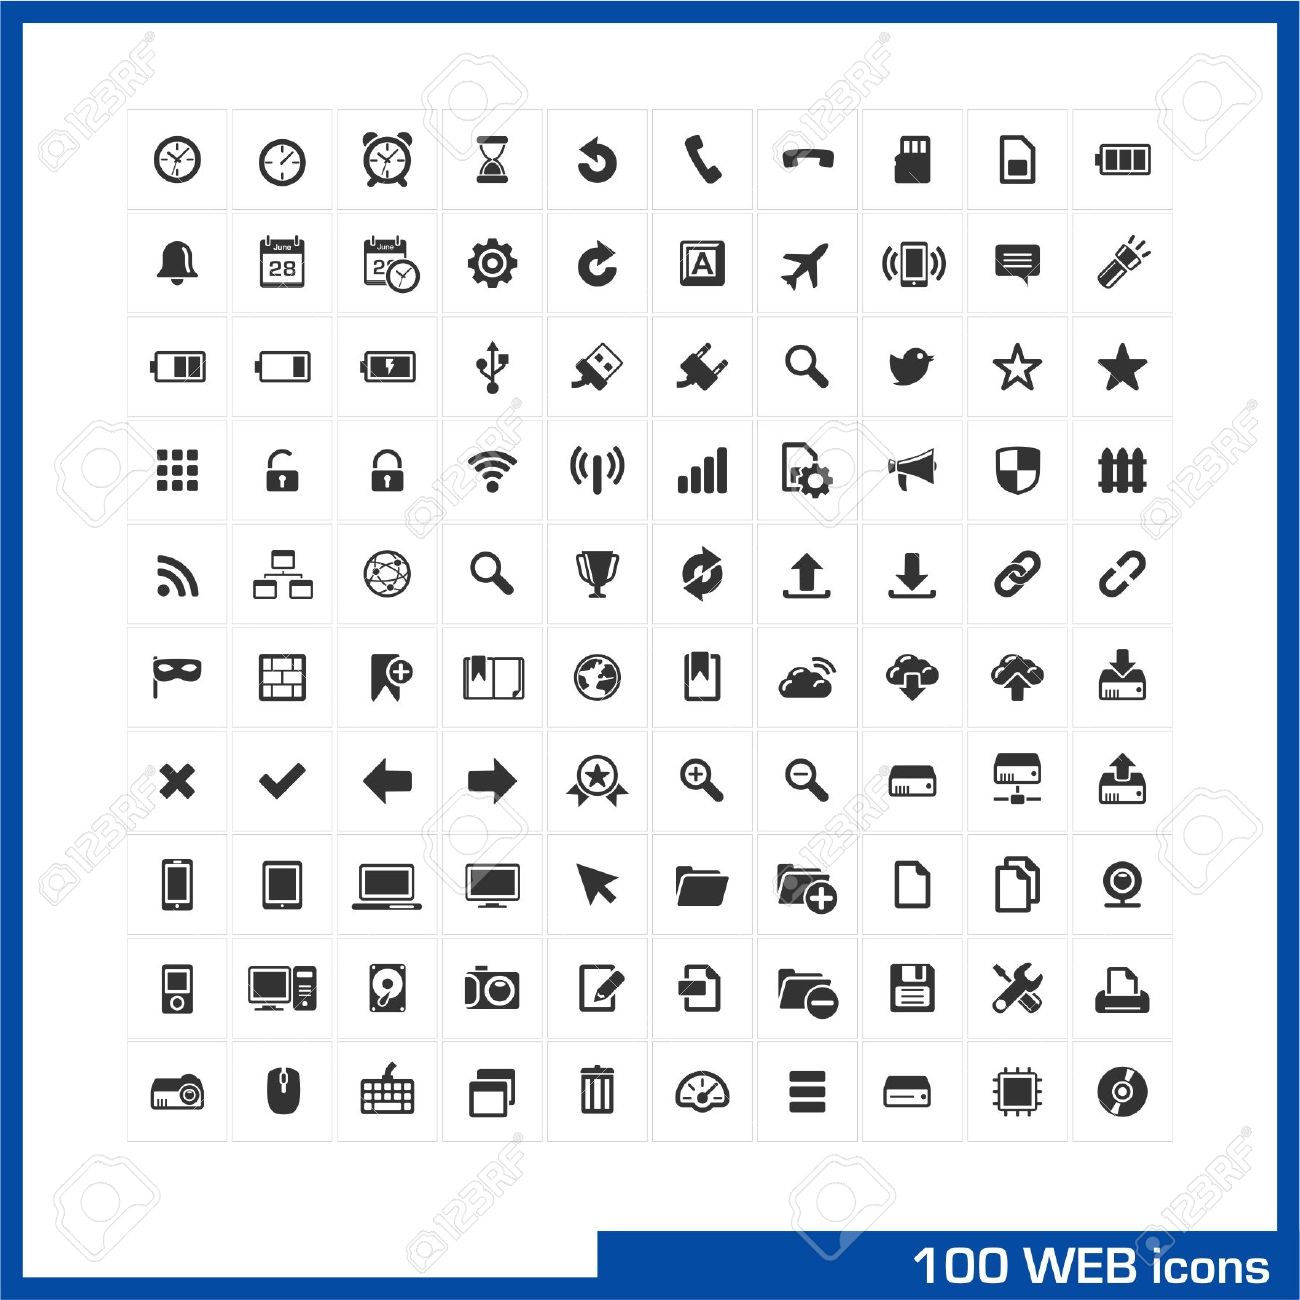 100 web icons set vector pictograms for web internet mobile 100 web icons set vector pictograms for web internet mobile computer interface design biocorpaavc